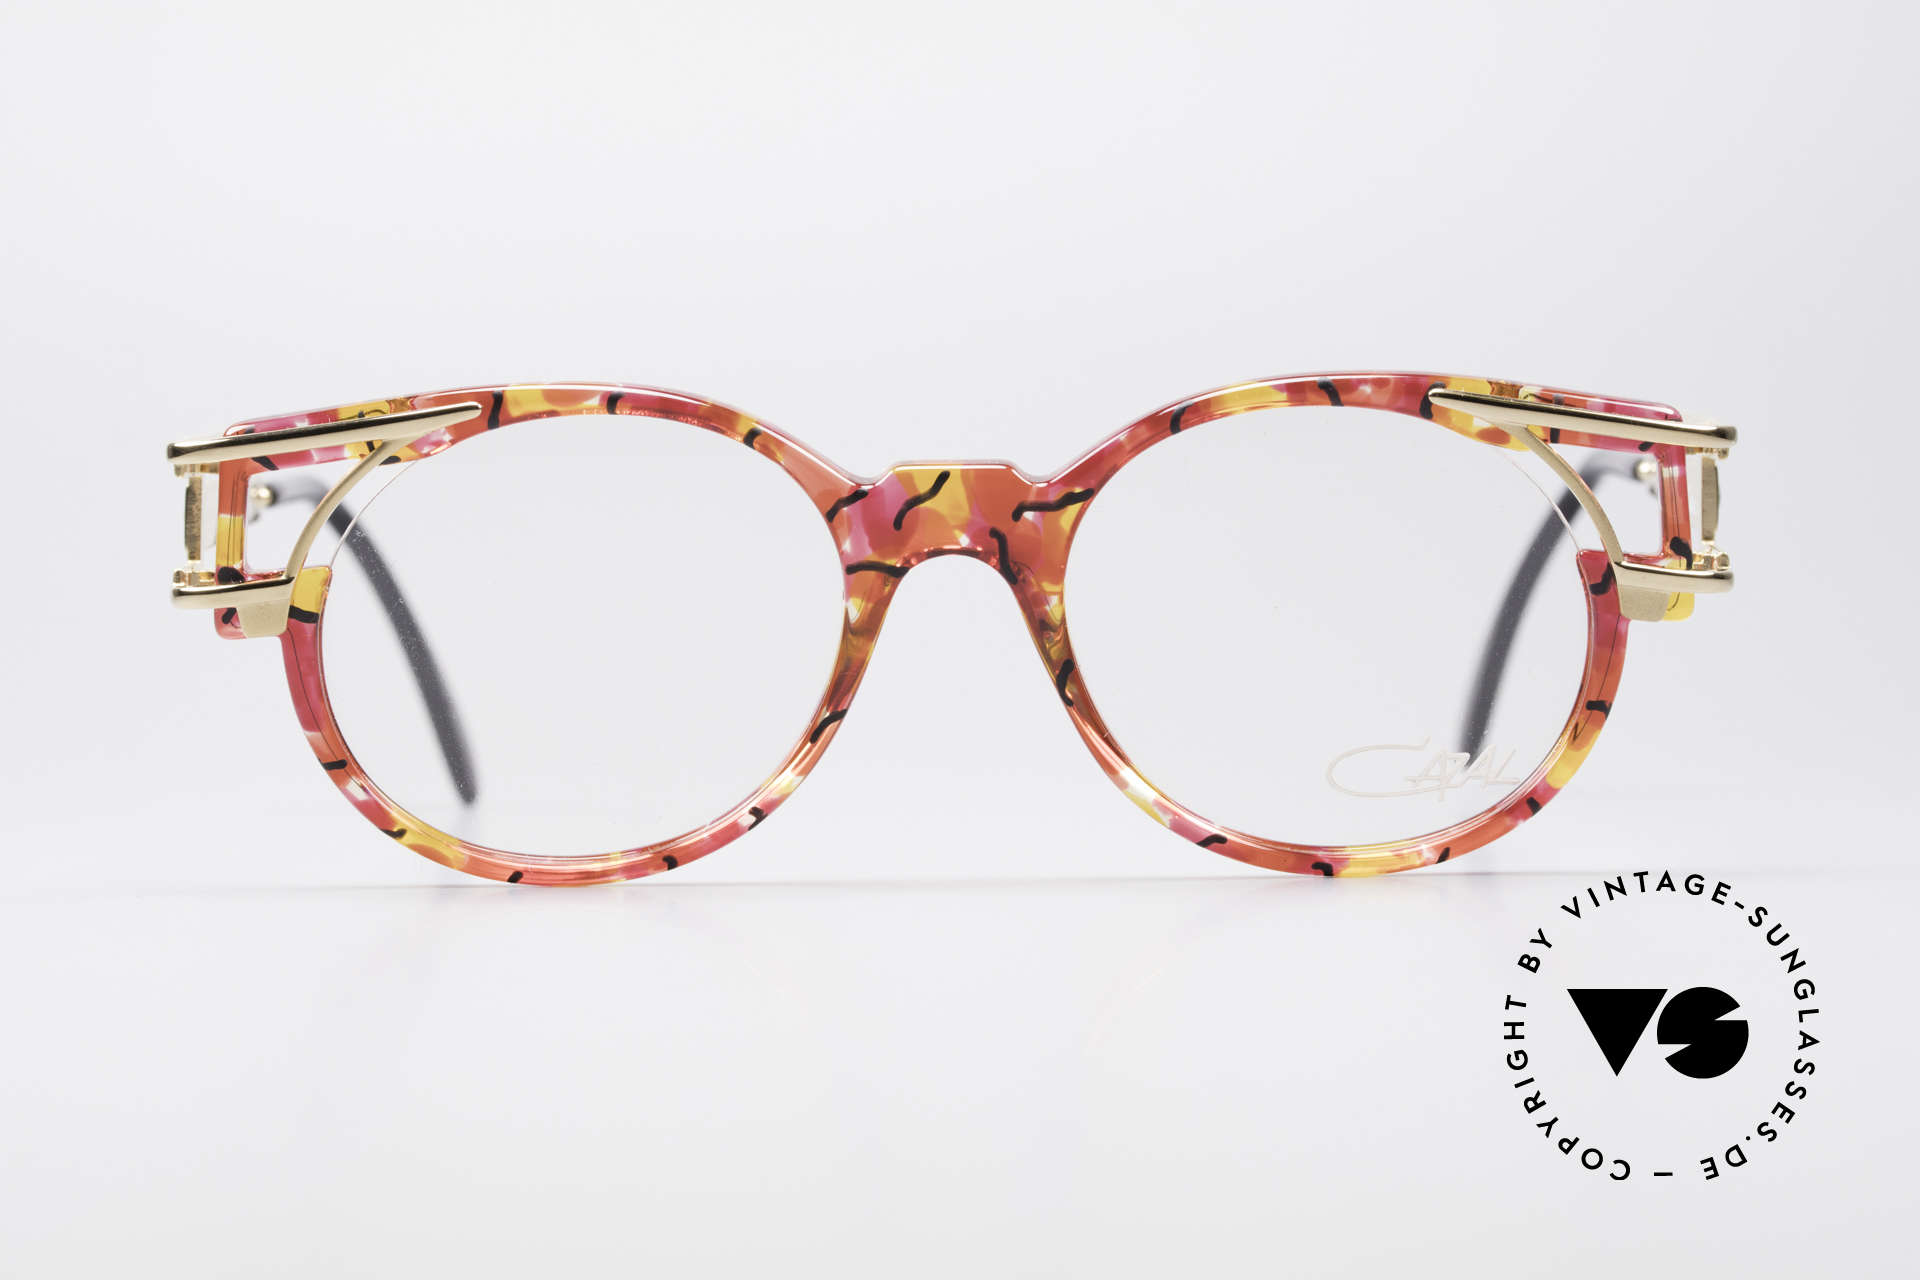 Cazal 353 90s Old School HipHop Glasses, at that time, the HIP-HOP eyeglasses par excellence, Made for Men and Women